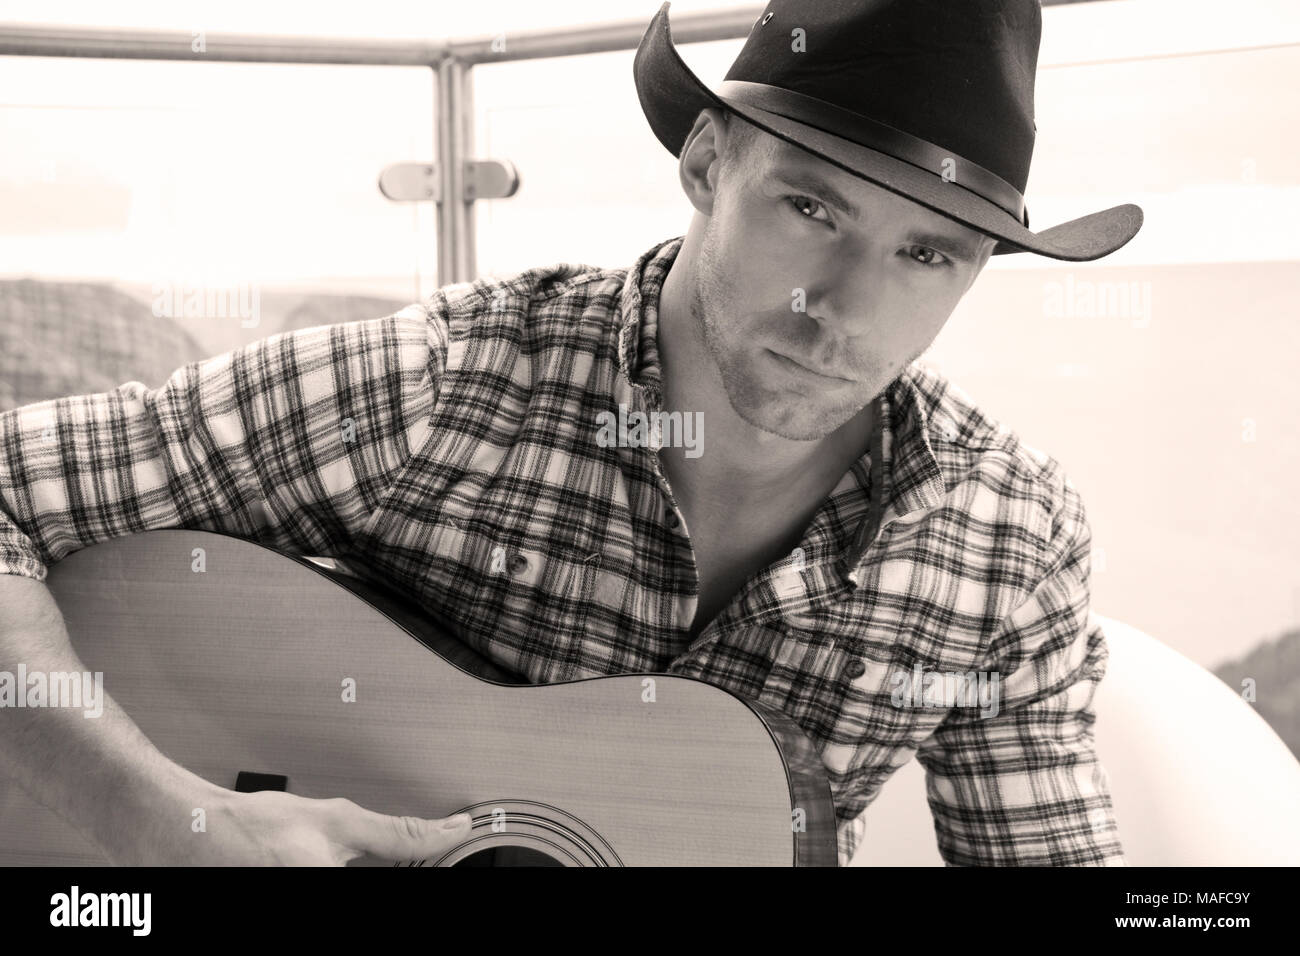 935e3c612ac41 Handsome country and western cowboy singer wearing hat and playing guitar  on hotel balcony with ocean